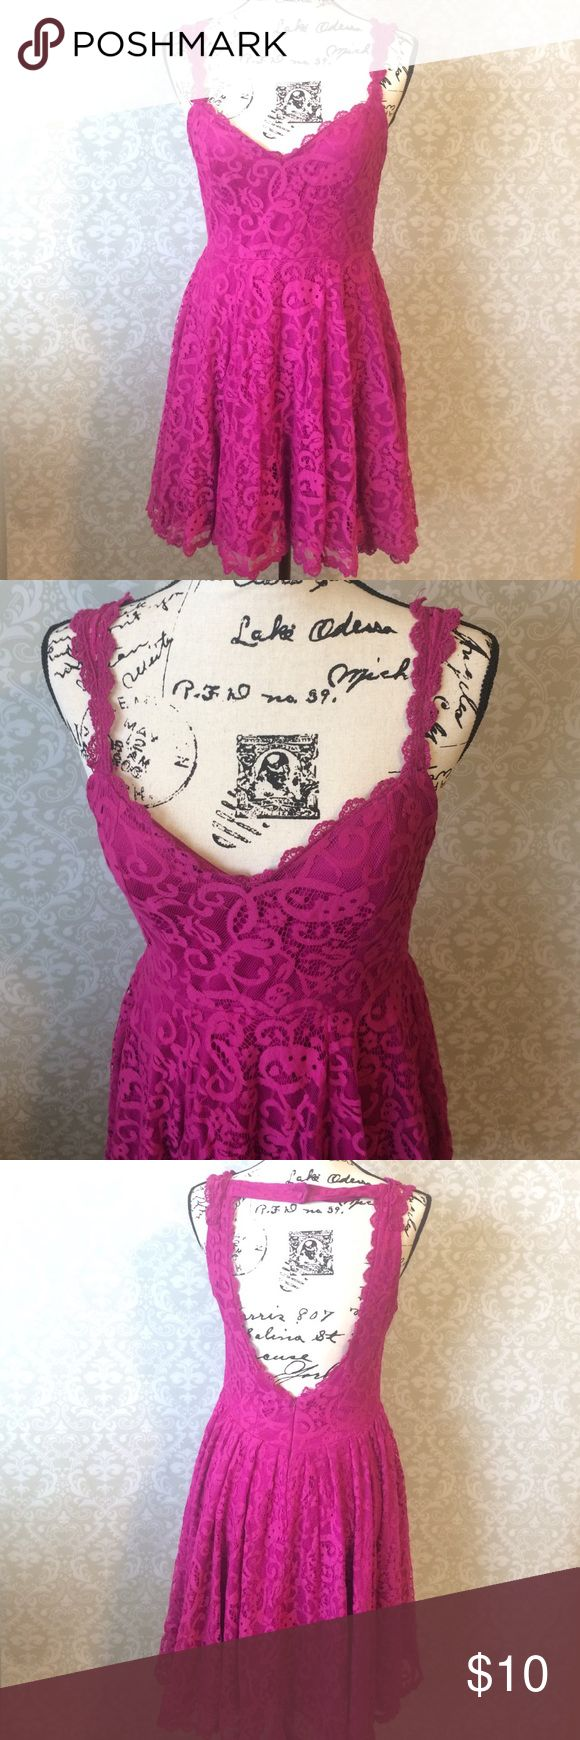 Pink dress Magenta dress with lace overlay. Has open back and zips up with clasp. Worn once. Great condition! Dresses Midi